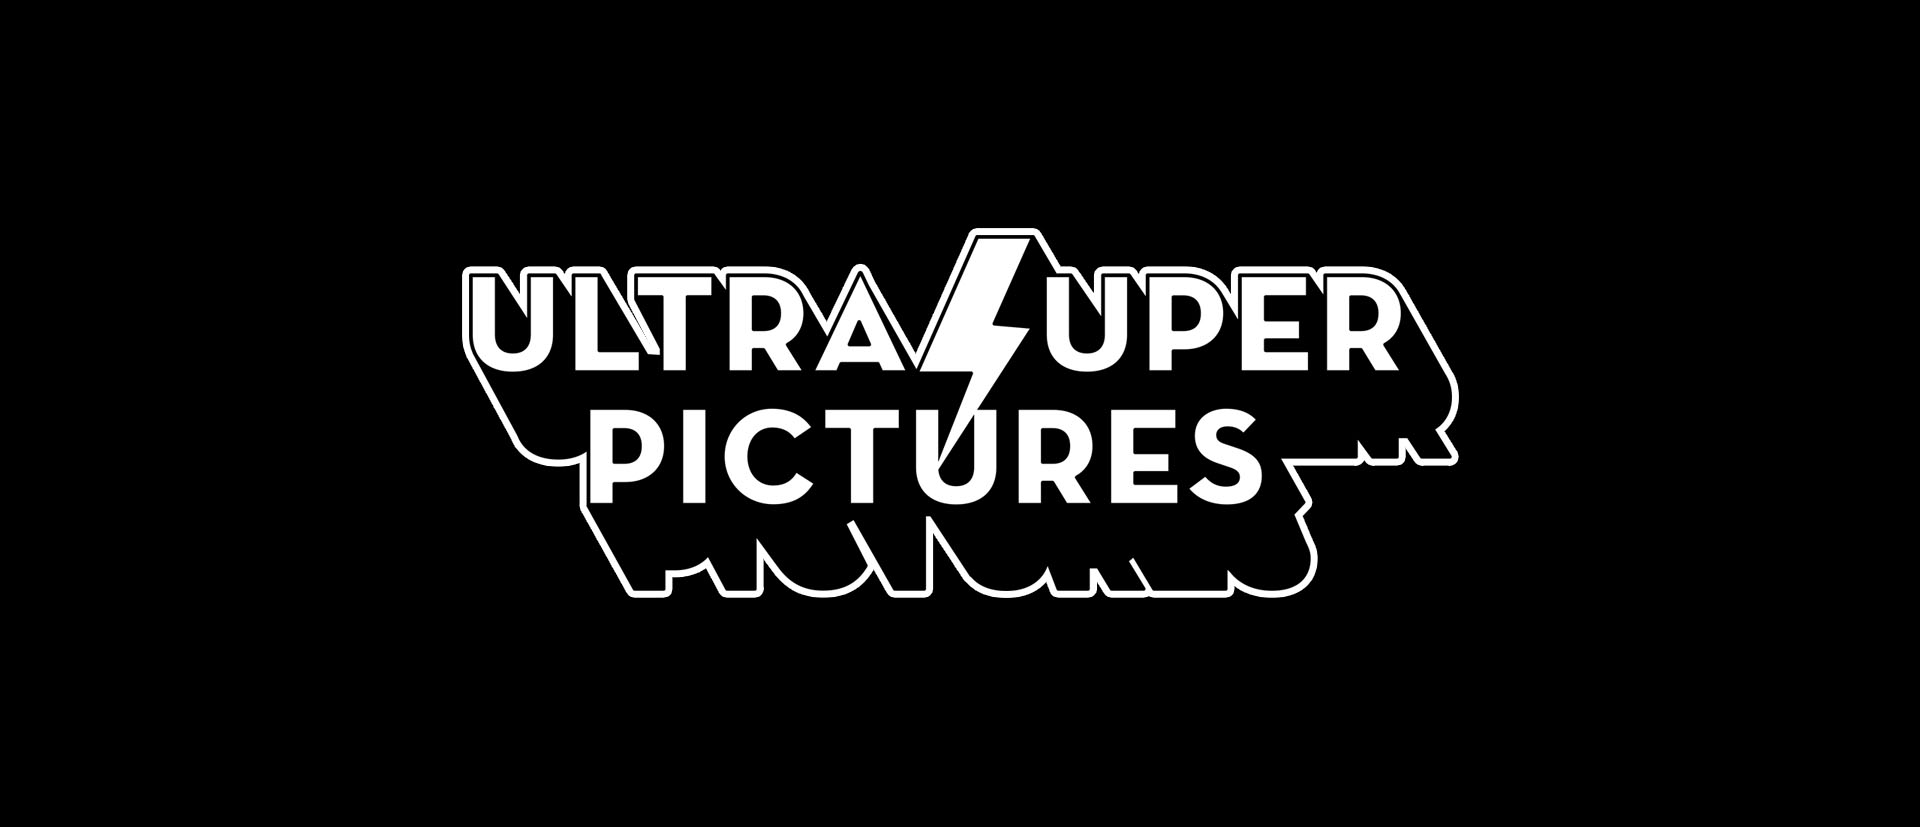 ULTRA SUPER PICTURES 4